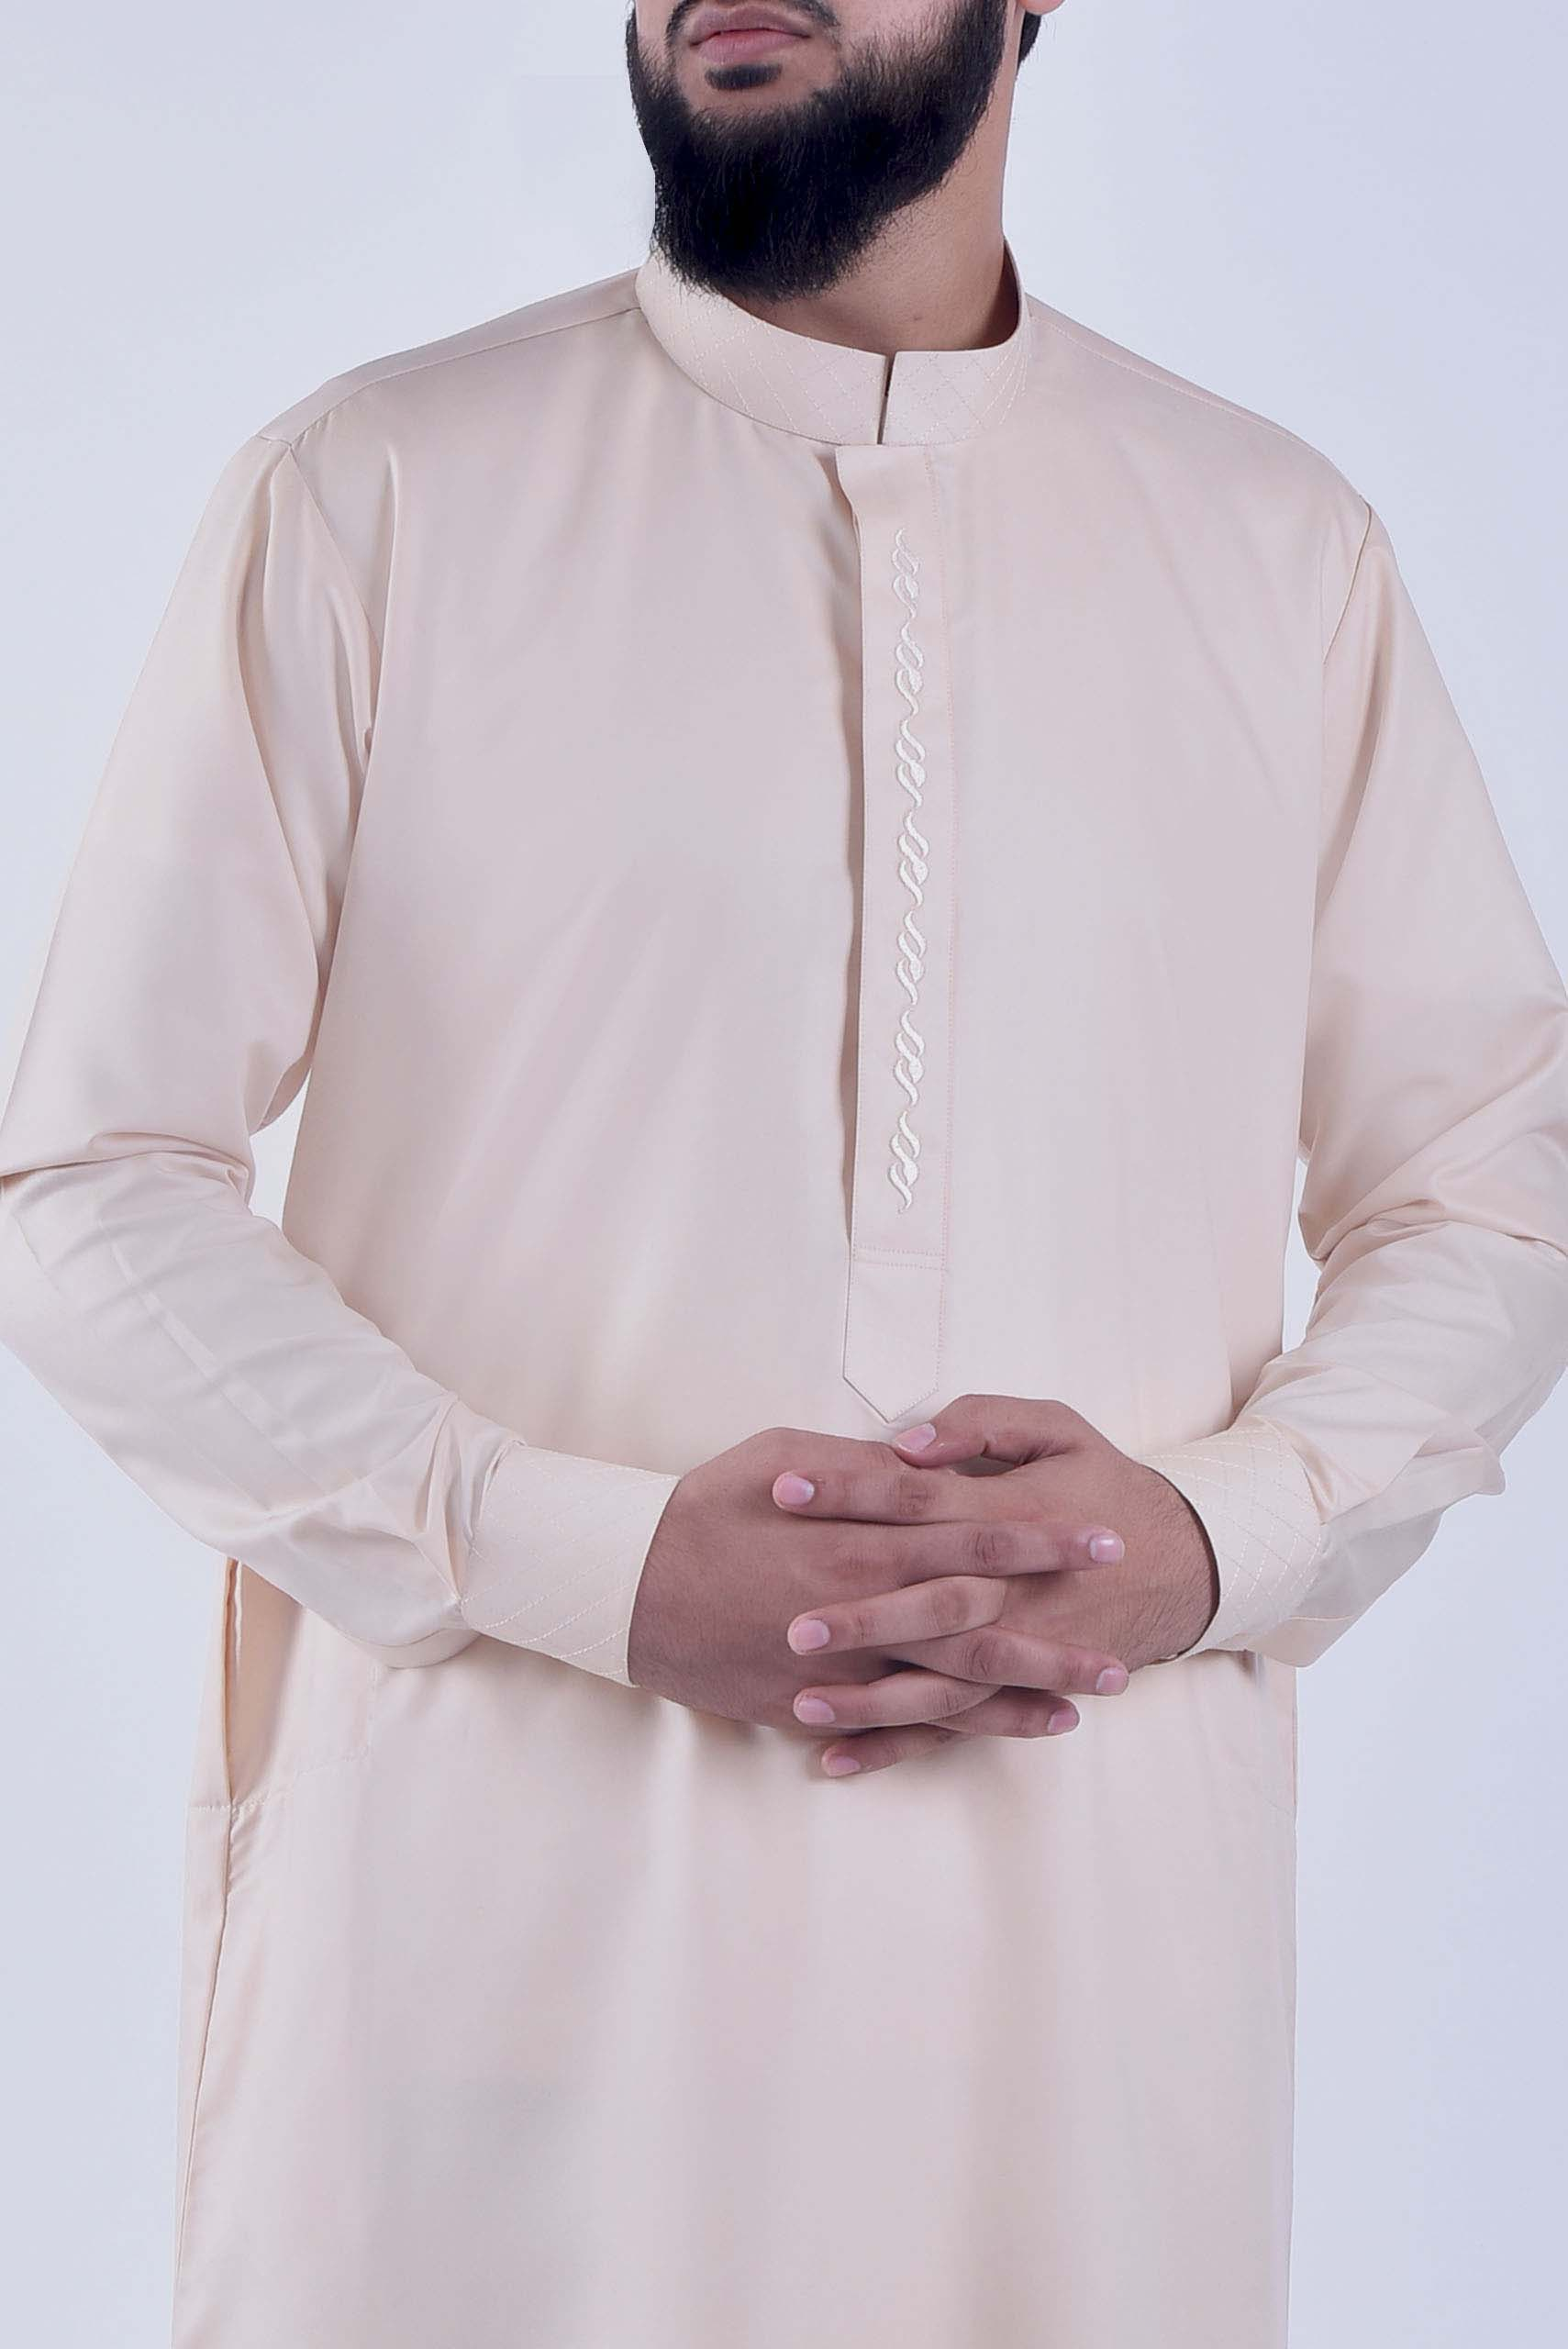 wise thobe alqamees jubba custom tailored qamis